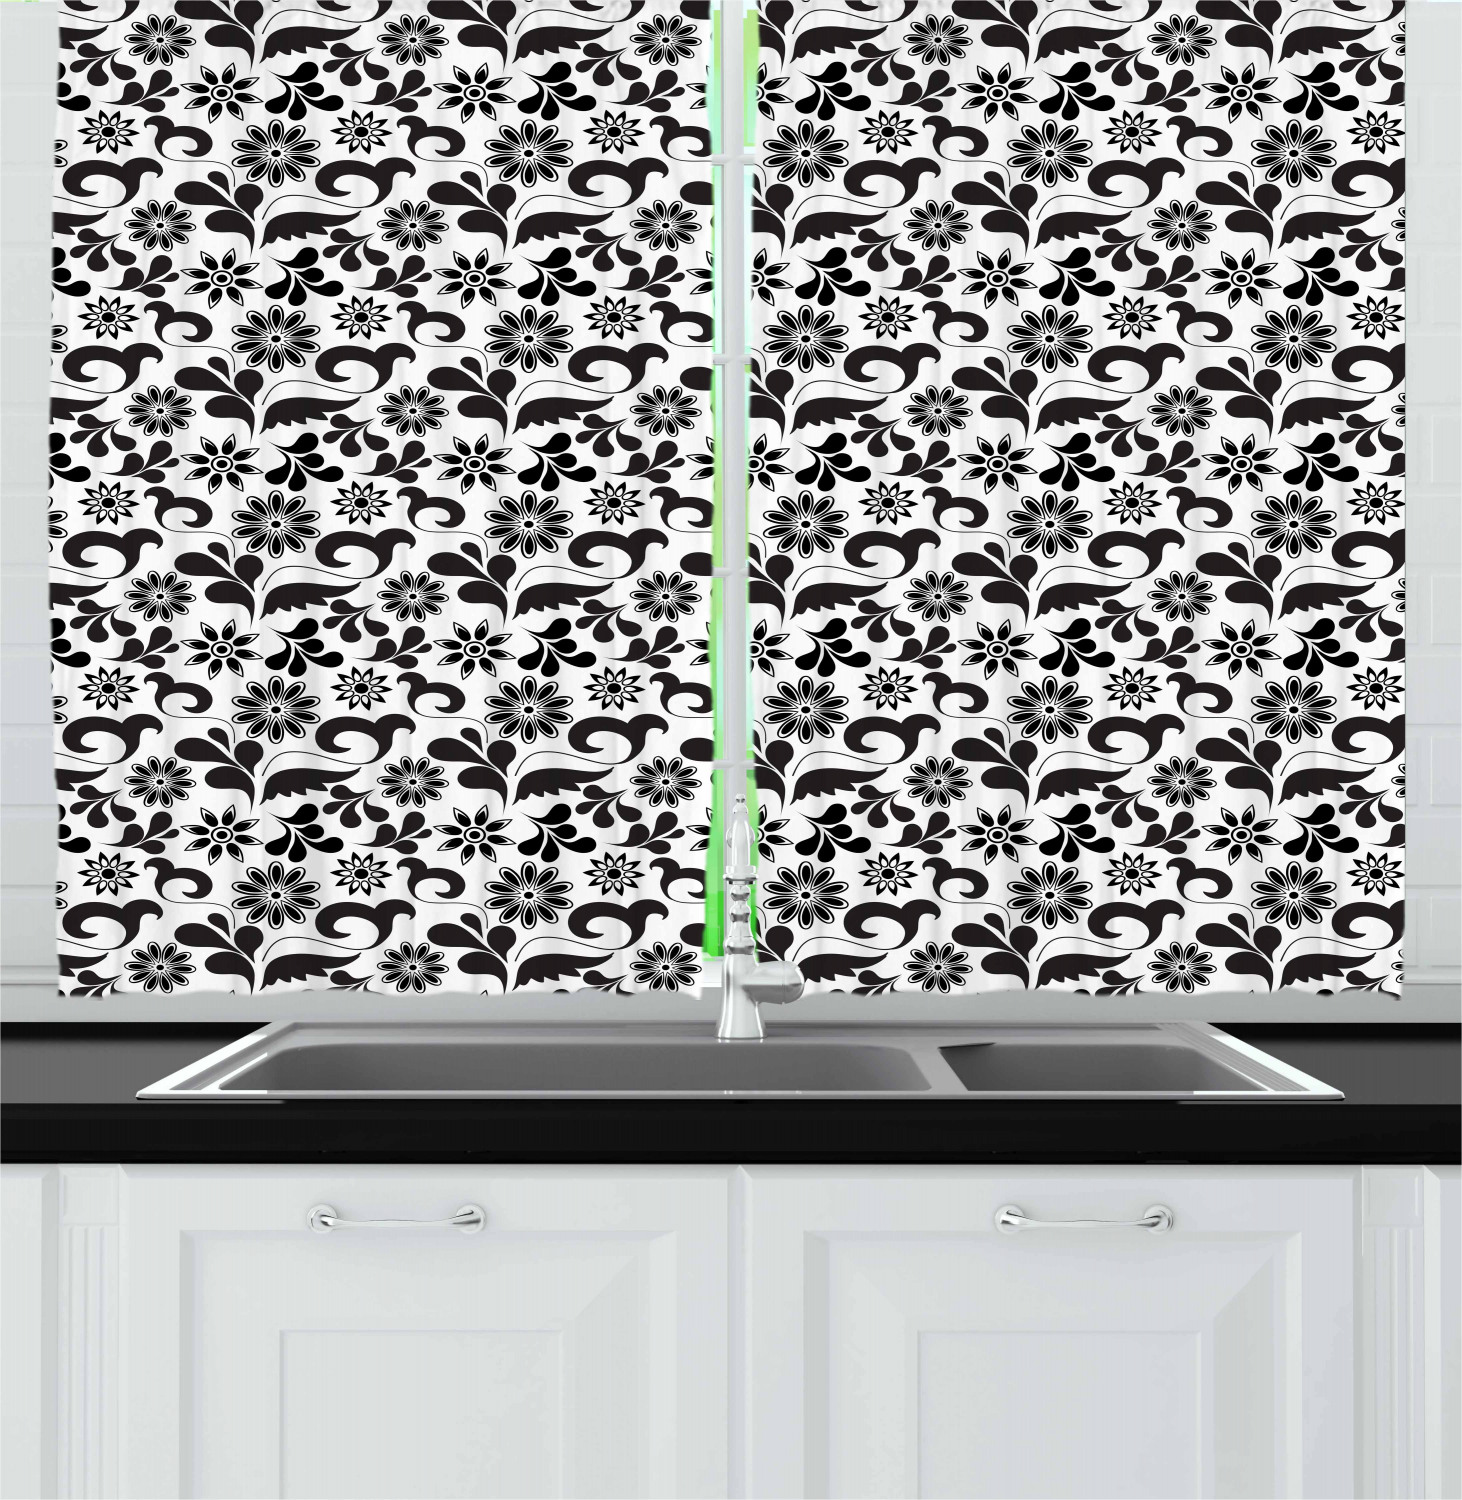 Black And White Kitchen Curtains: Black And White Kitchen Curtains 2 Panel Set Window Drapes